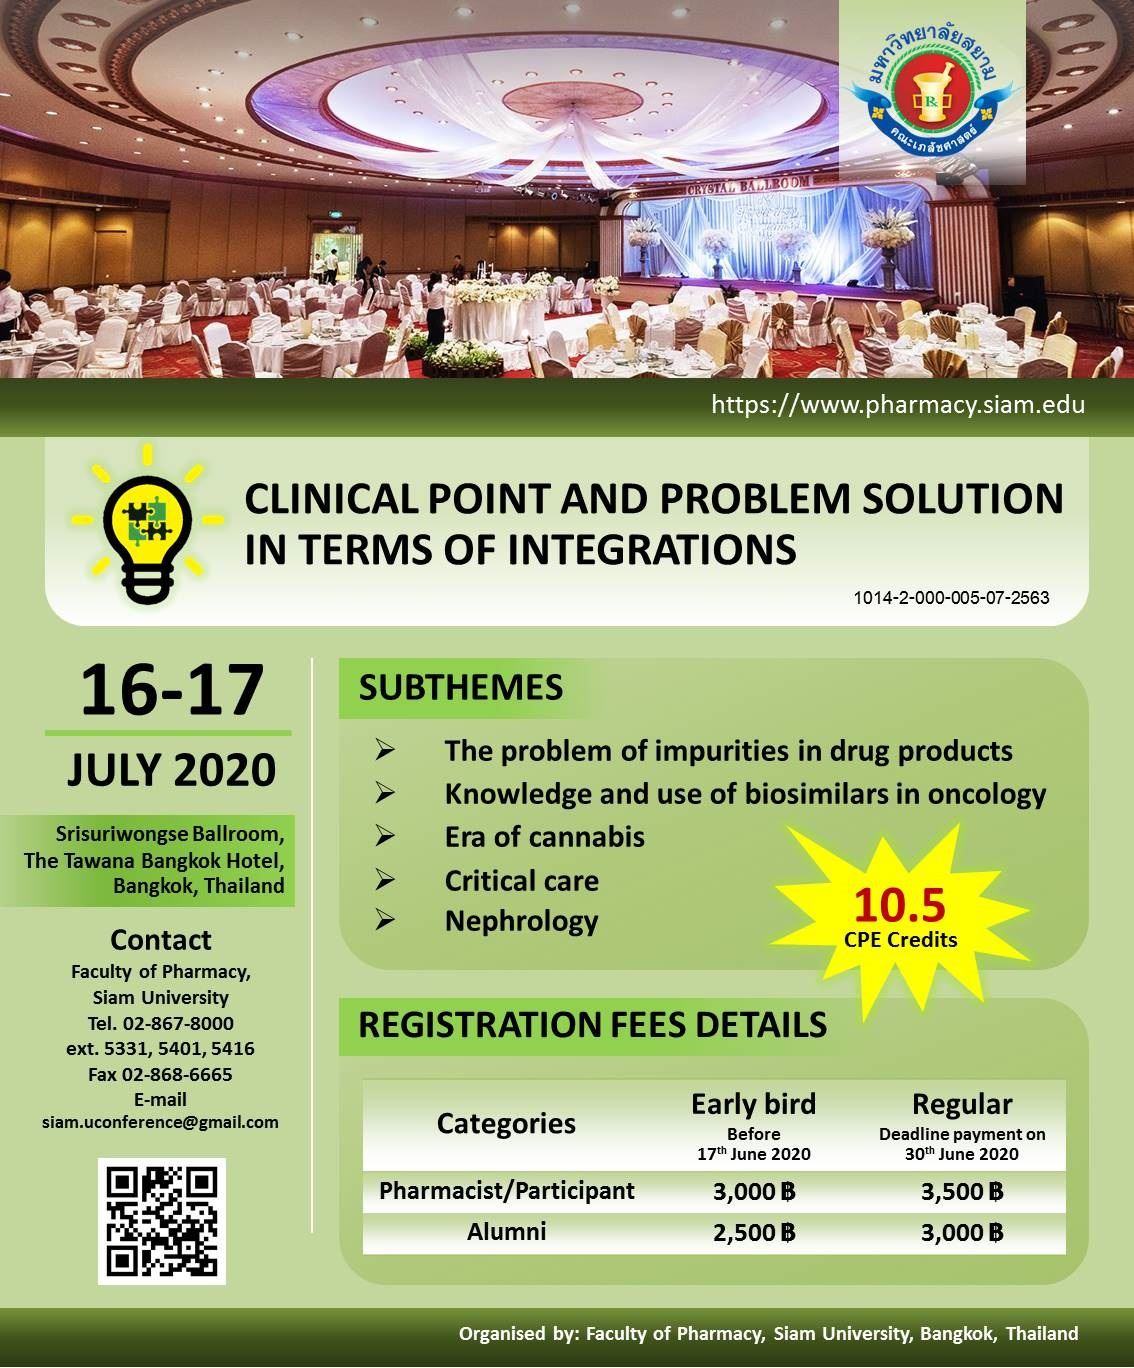 การประชุมวิชาการ Clinical Point and Problem Solution in Terms of Integrations